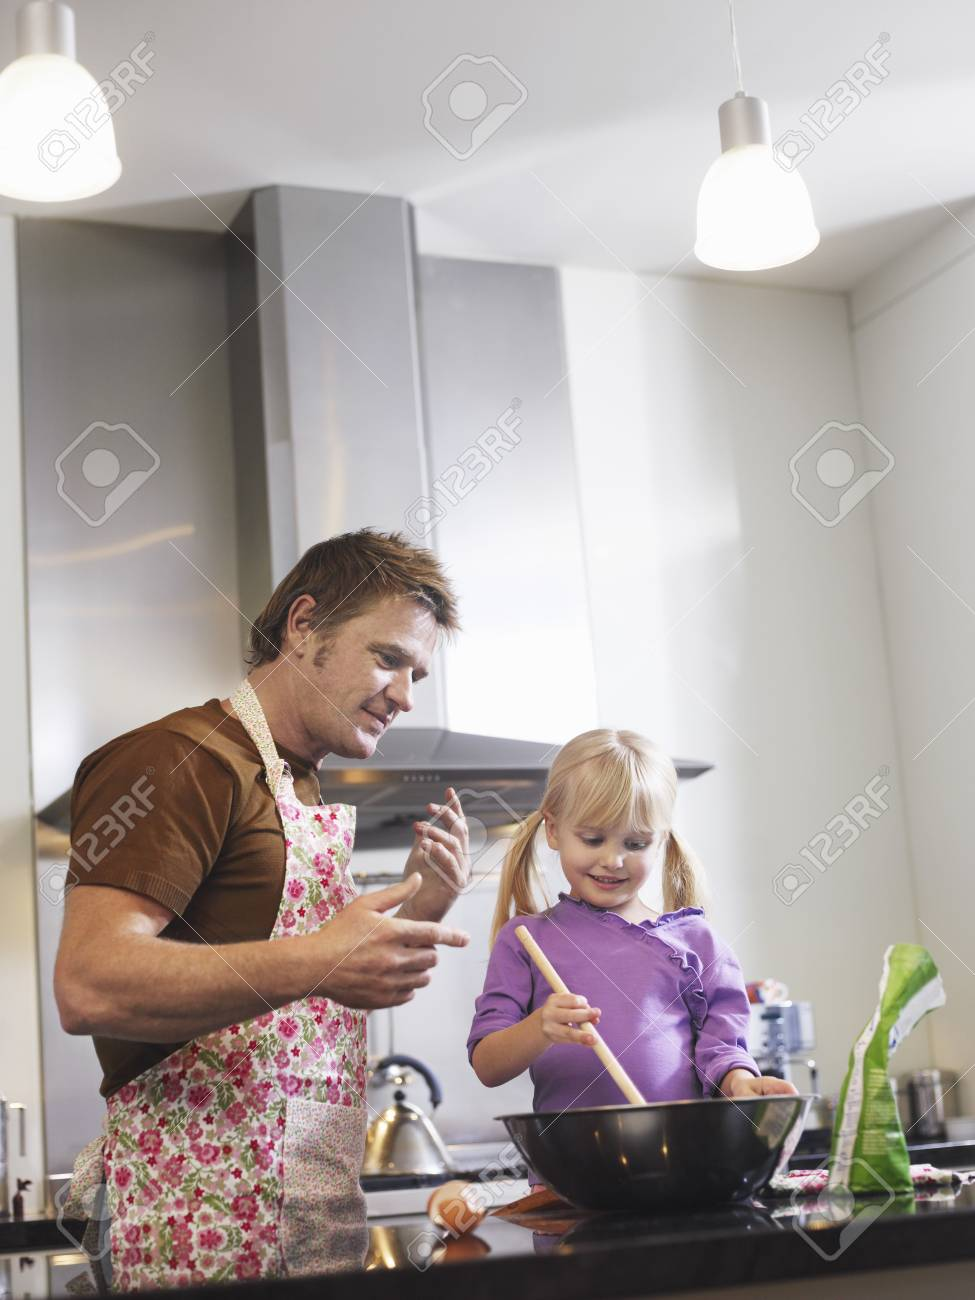 Girl (3-4) and father baking in kitchen Stock Photo - 19213517